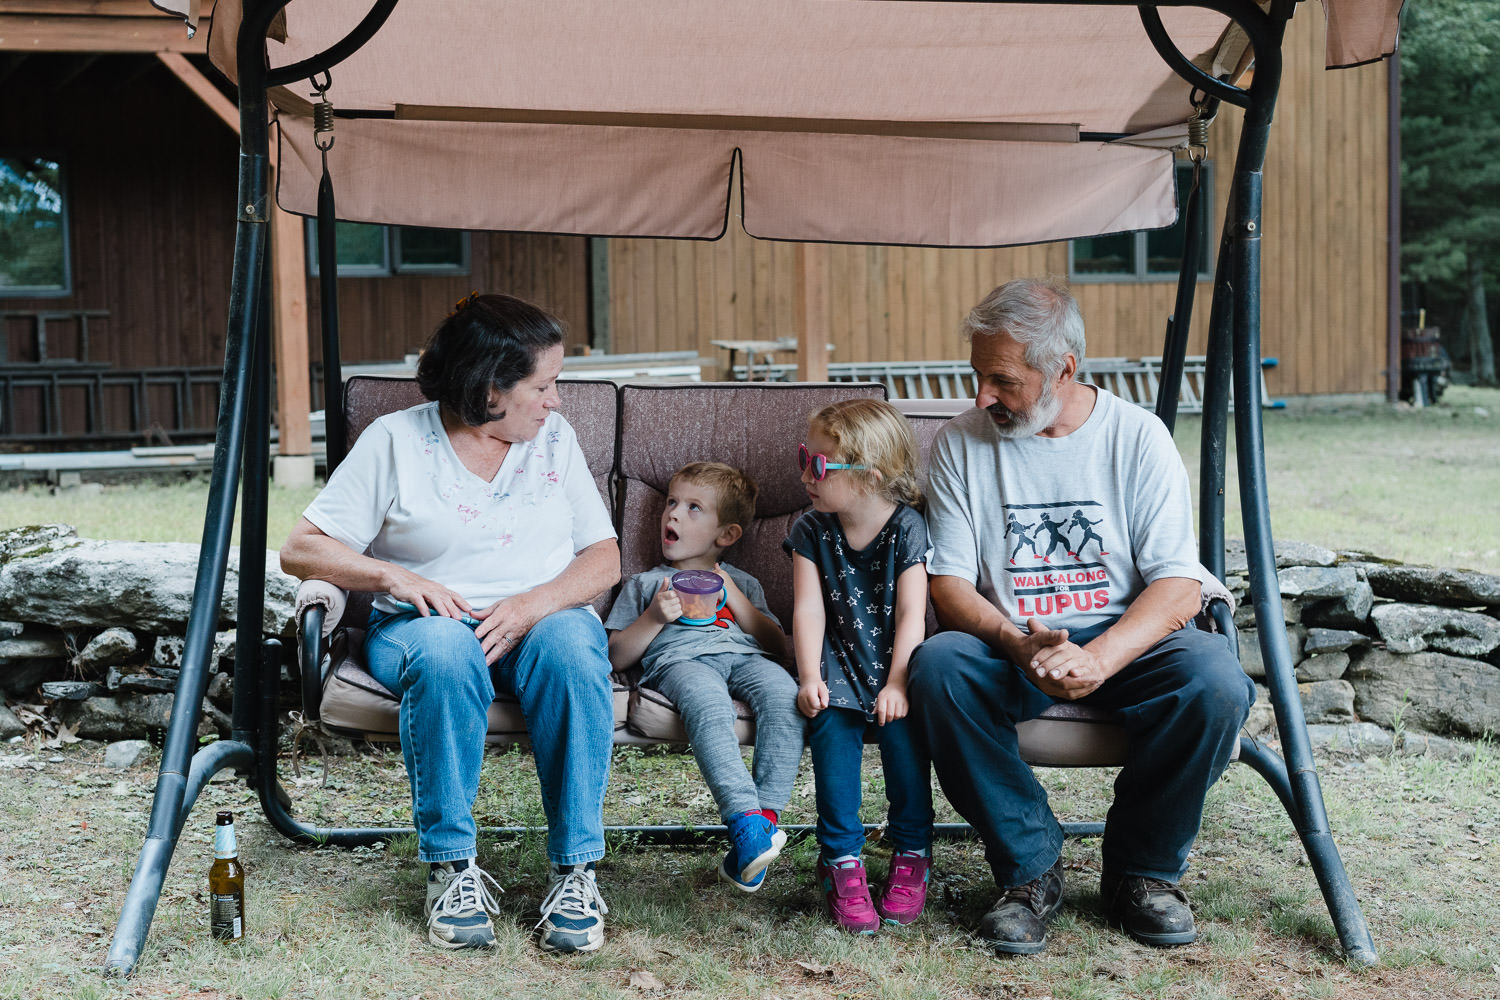 A family sits in a recliner swing on their lawn.